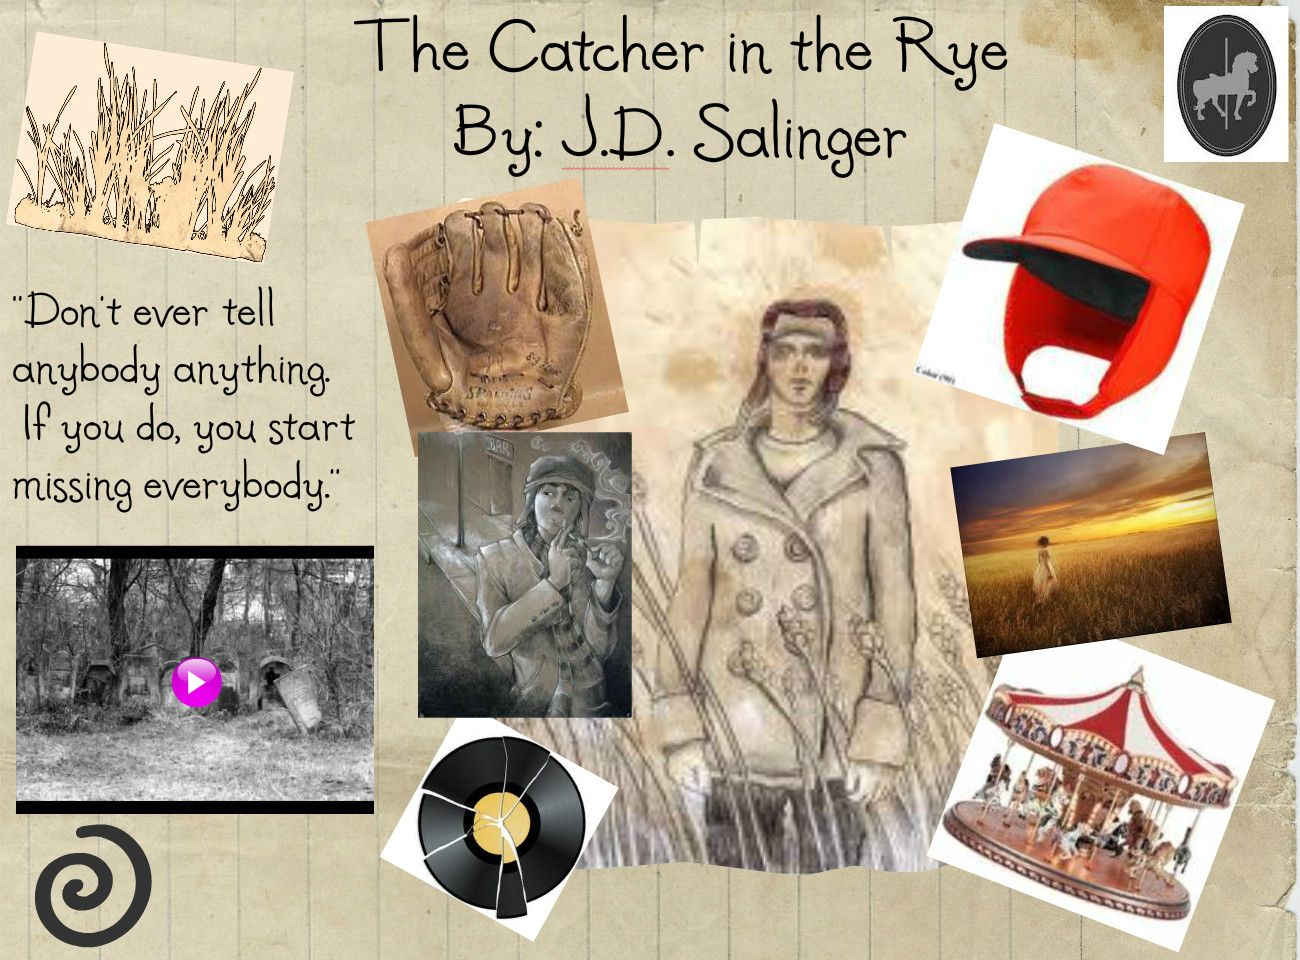 17 best images about the catcher in the rye holden 17 best images about the catcher in the rye holden caulfield english literature and messages